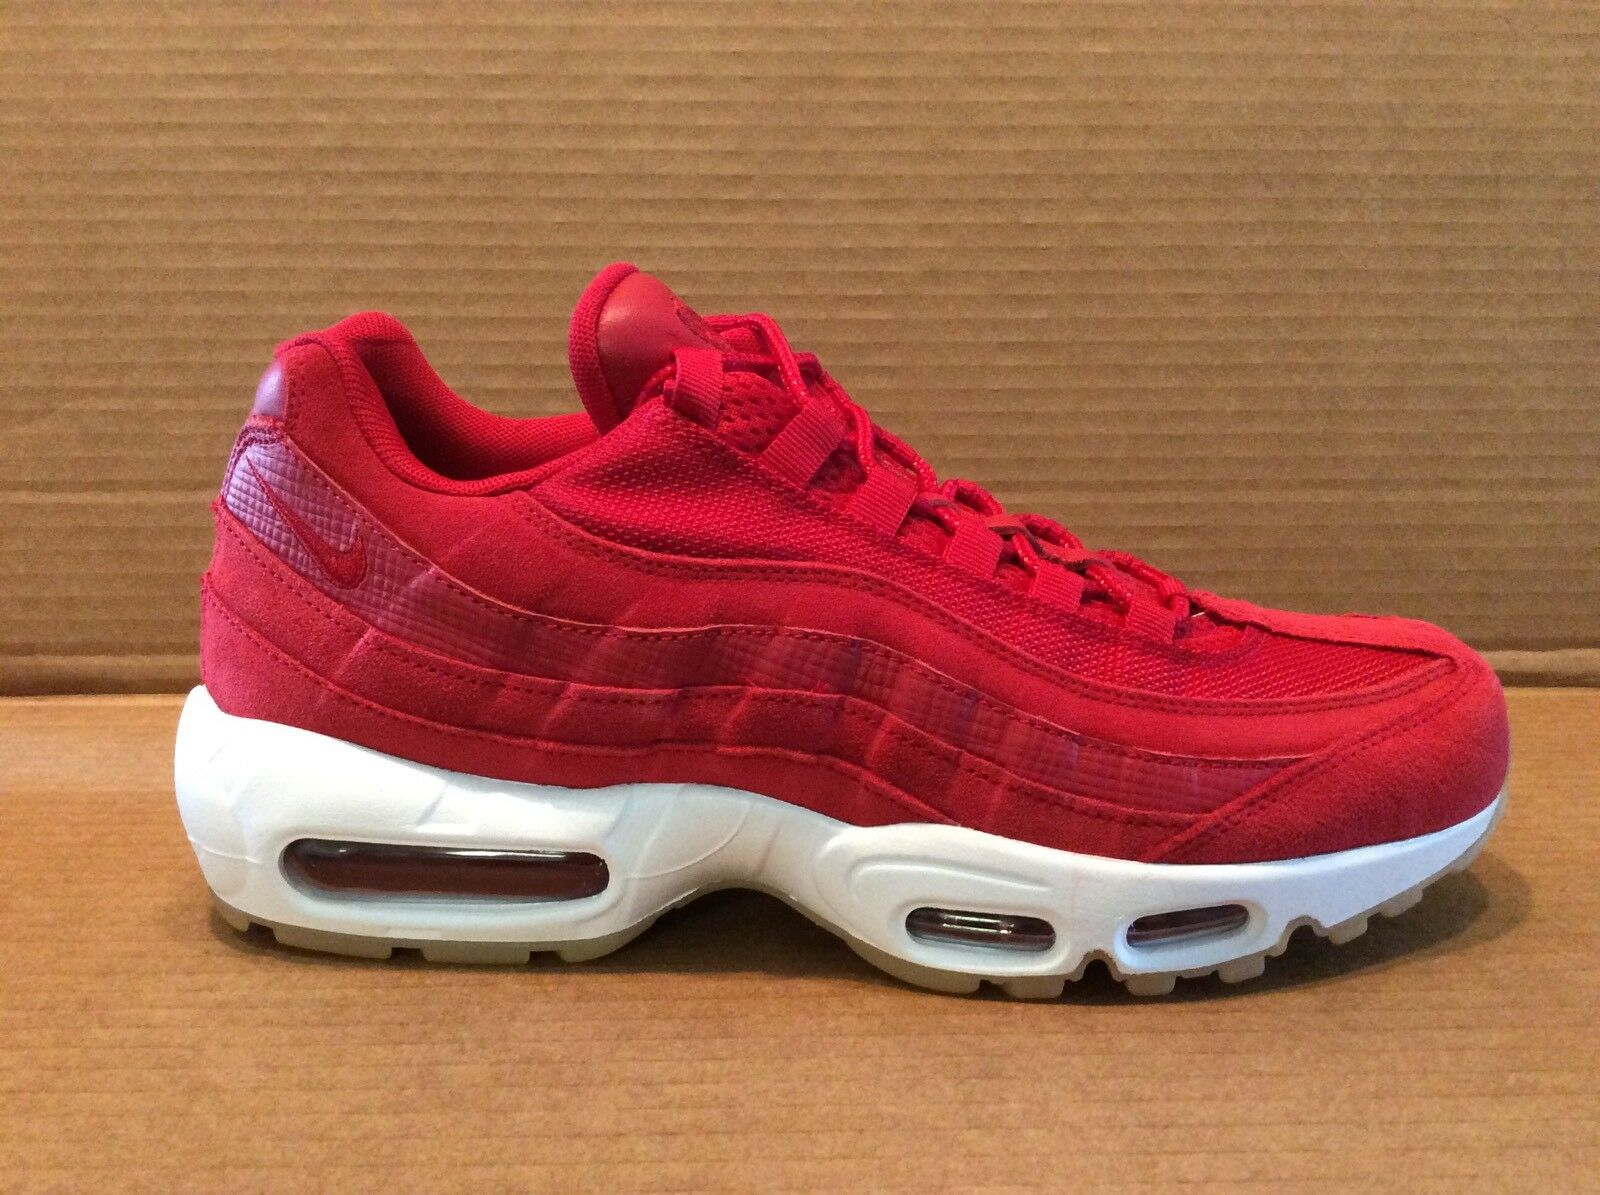 Nike Air Max 95 PRM men's size 9.5 gym red gym red